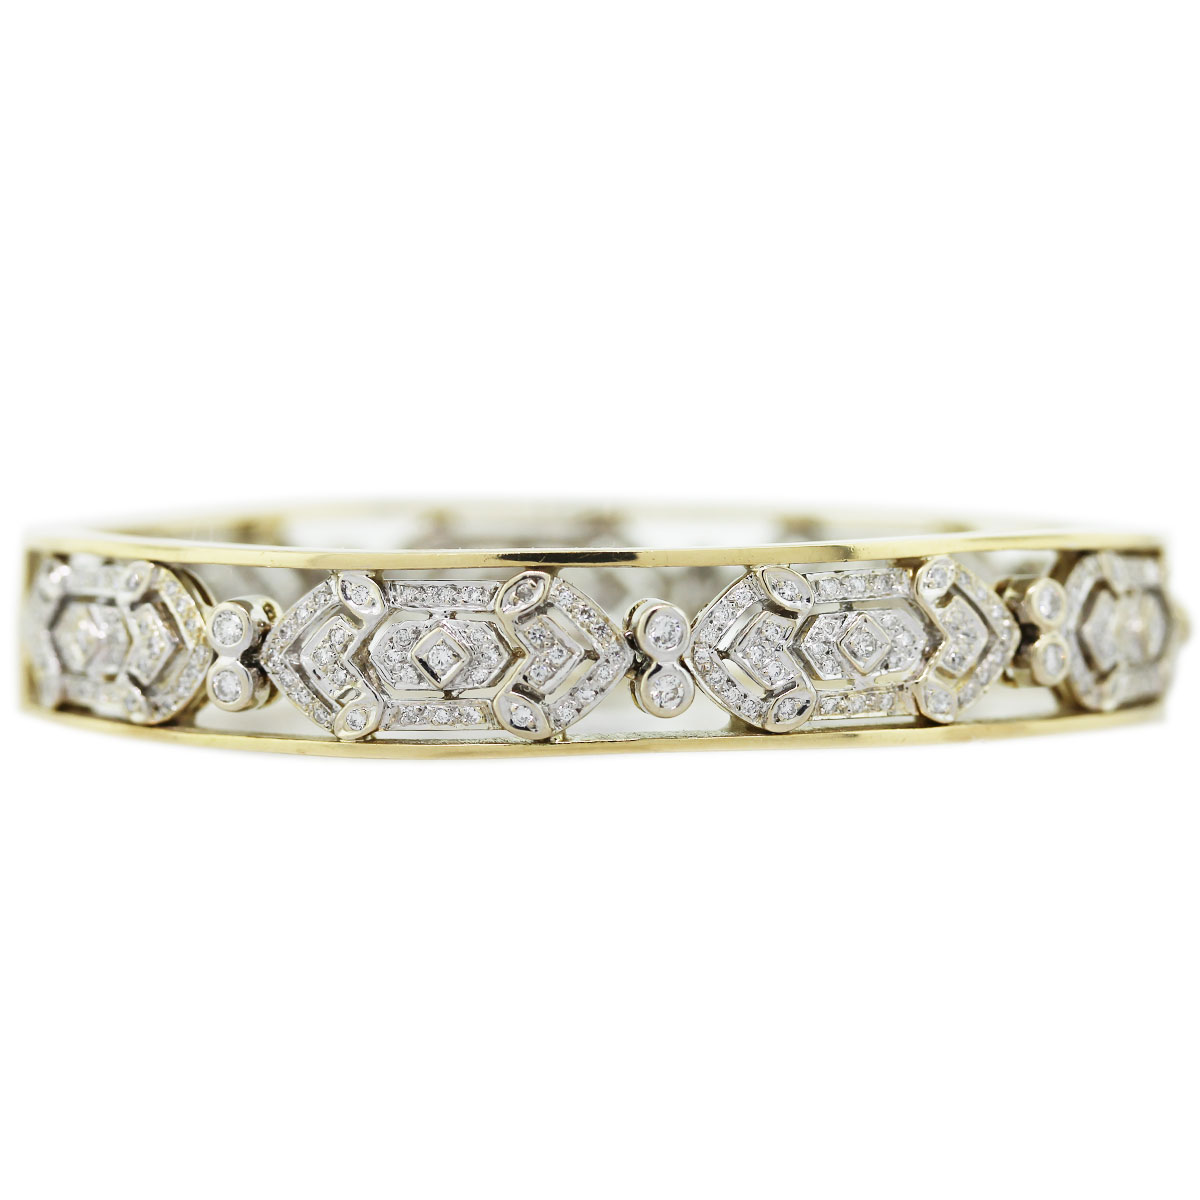 """""14K Yellow Gold Diamond Vintage Style Bangle Bracelet"""""" 2089674"